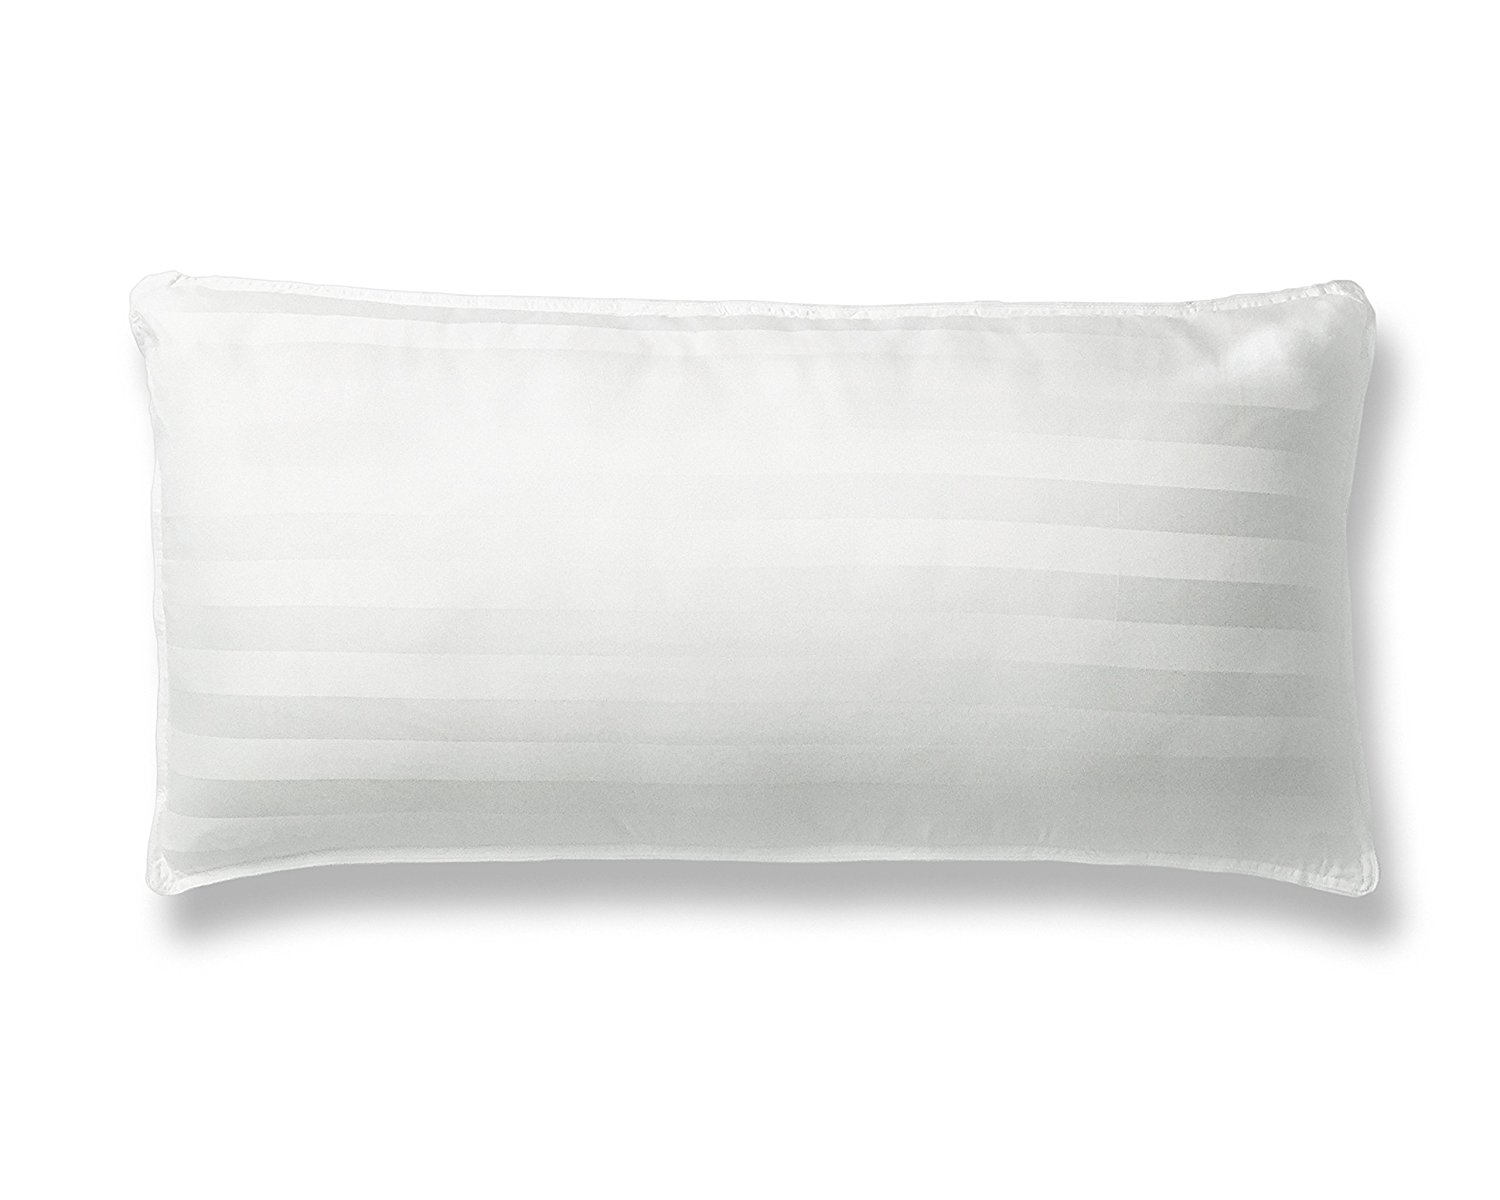 new 100 ultra soft bamboo pillow with adjustable thickness hypoallergenic machine washable cover by xtreme comforts